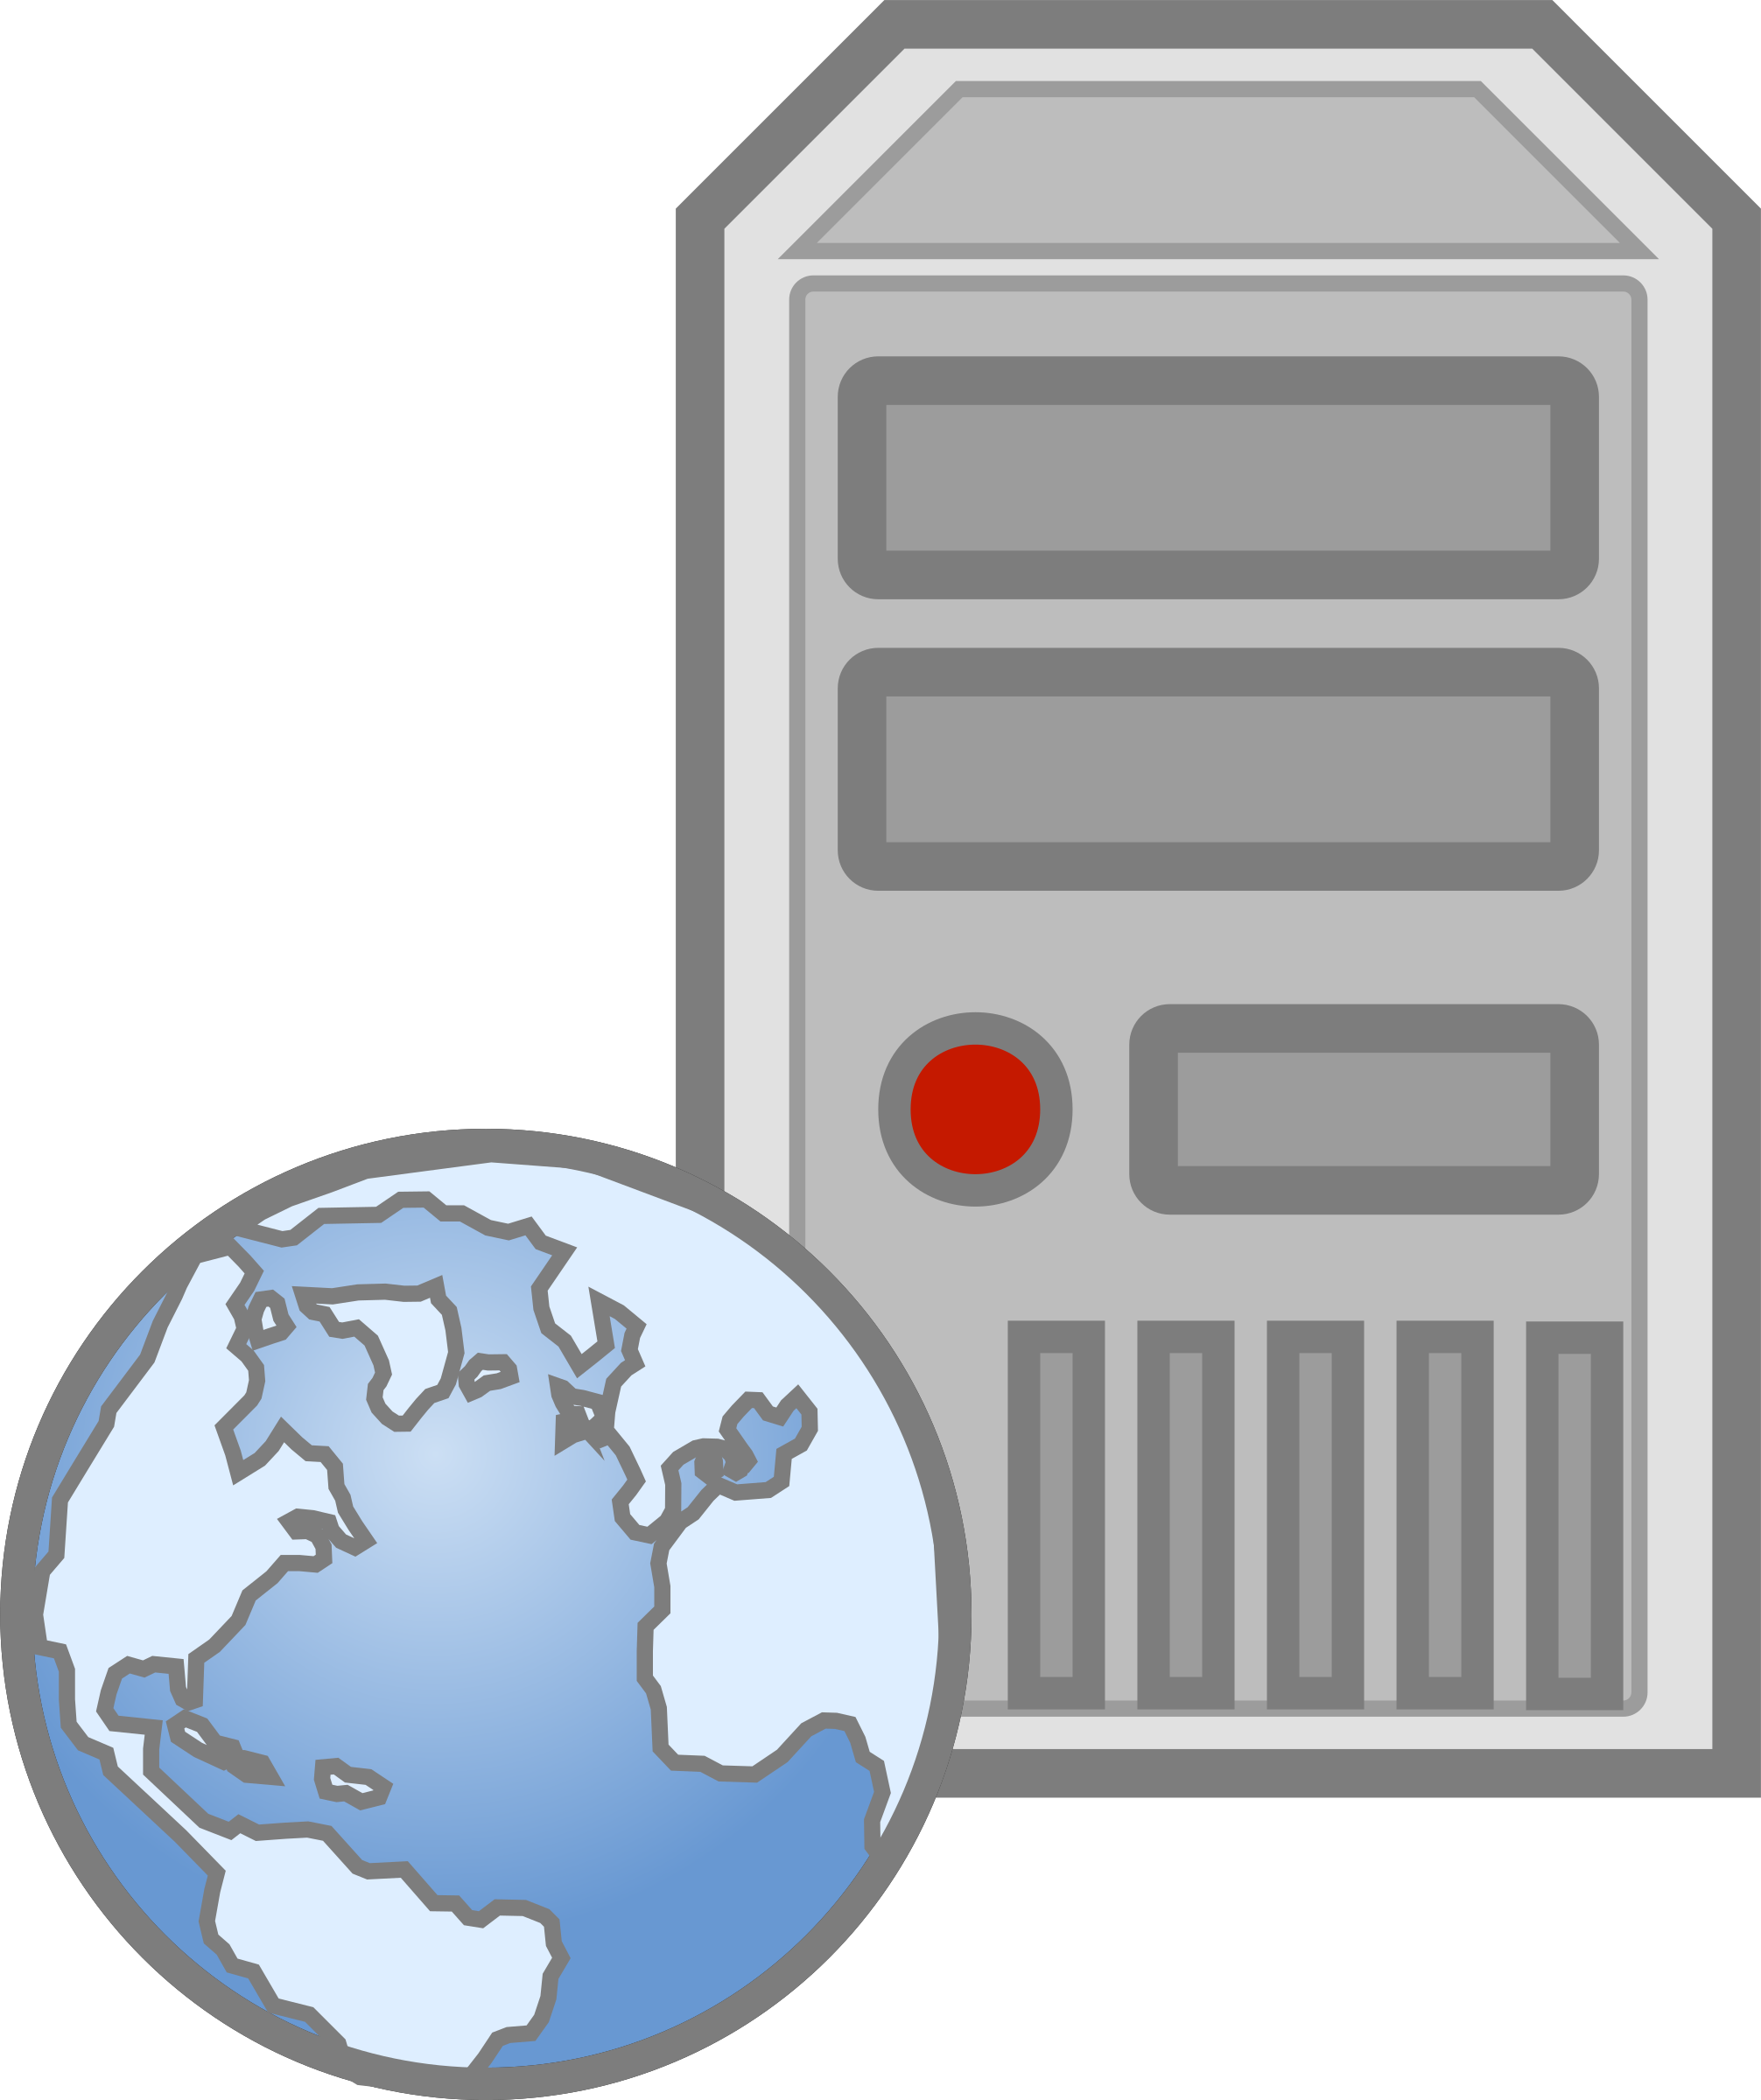 Web server clipart png clipart royalty free library HD This Free Icons Png Design Of Server - Web Server Clipart ... clipart royalty free library